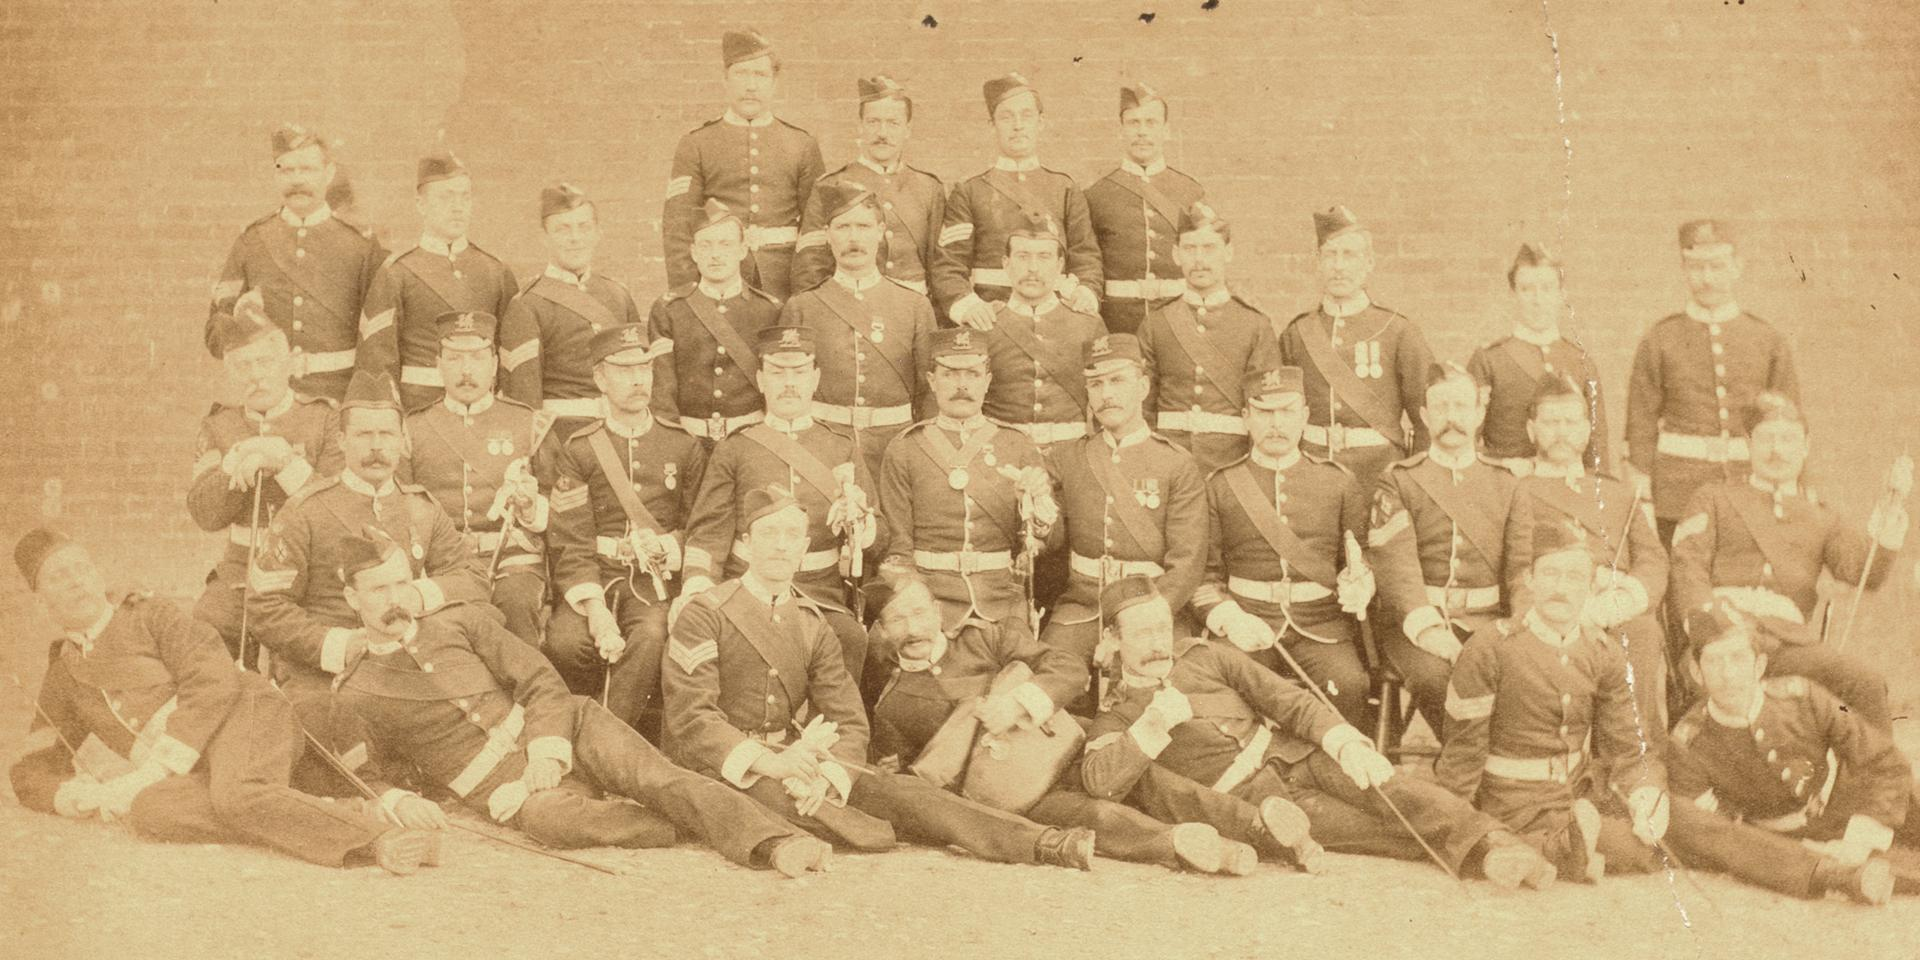 Sergeant Major J Pepper (centre) and the 3rd (The East Kent) Regiment of Foot, 1877